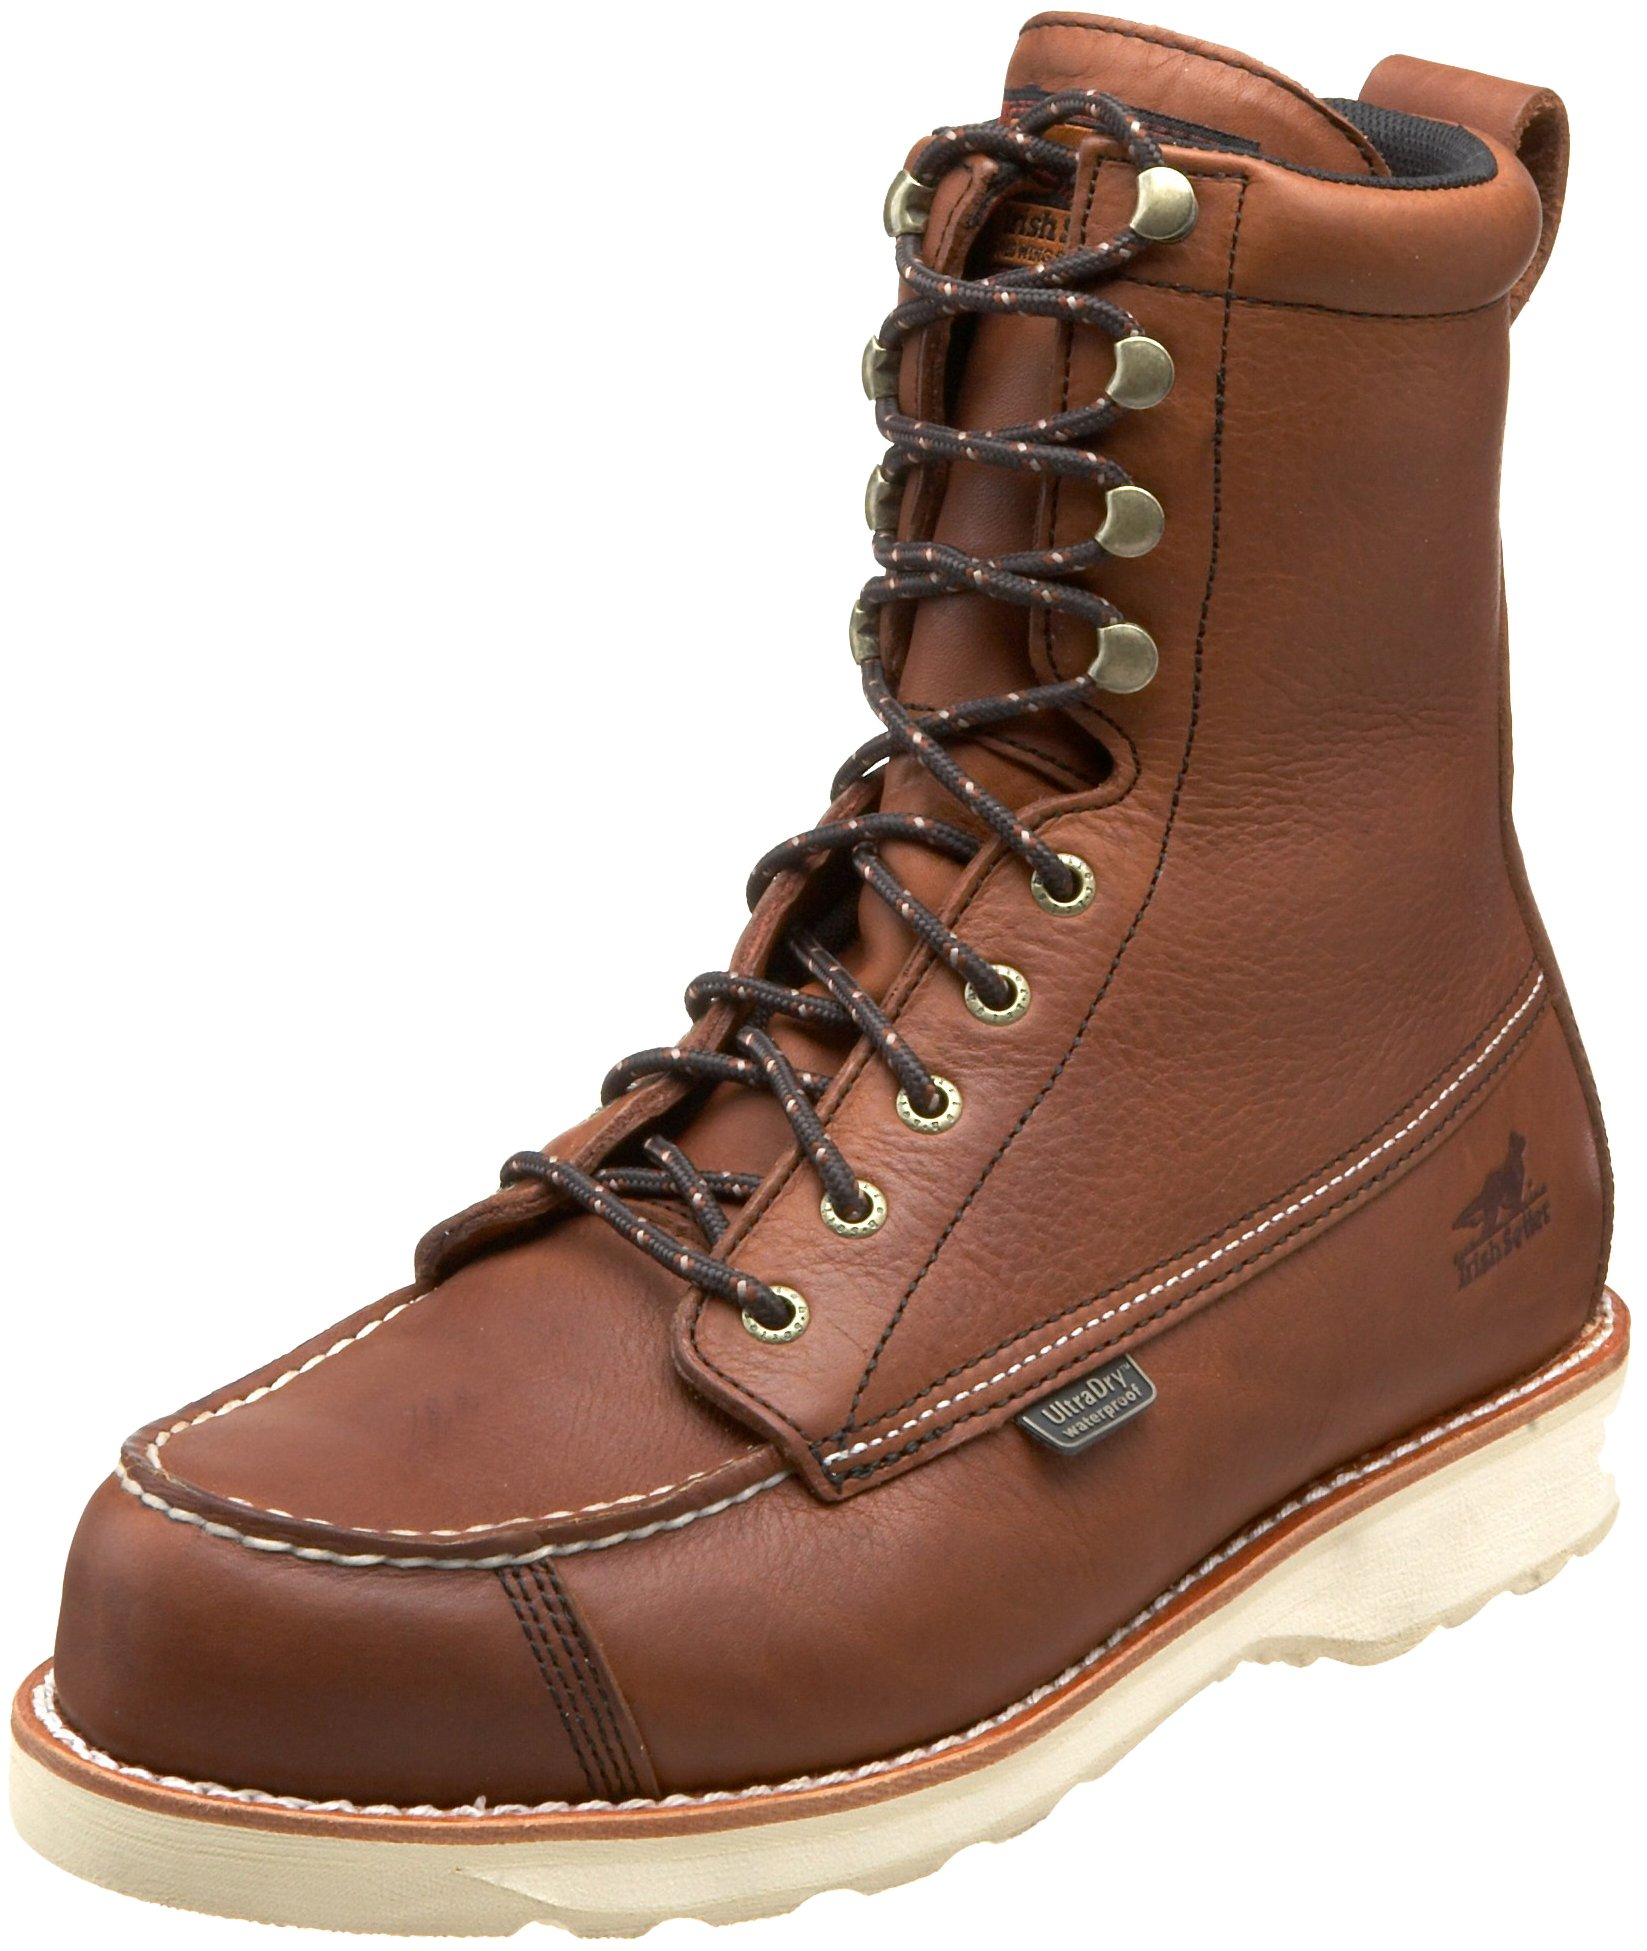 Irish Setter Men's 894 Wingshooter Waterproof 9'' Upland Hunting Boot,Amber,7 D US by Irish Setter